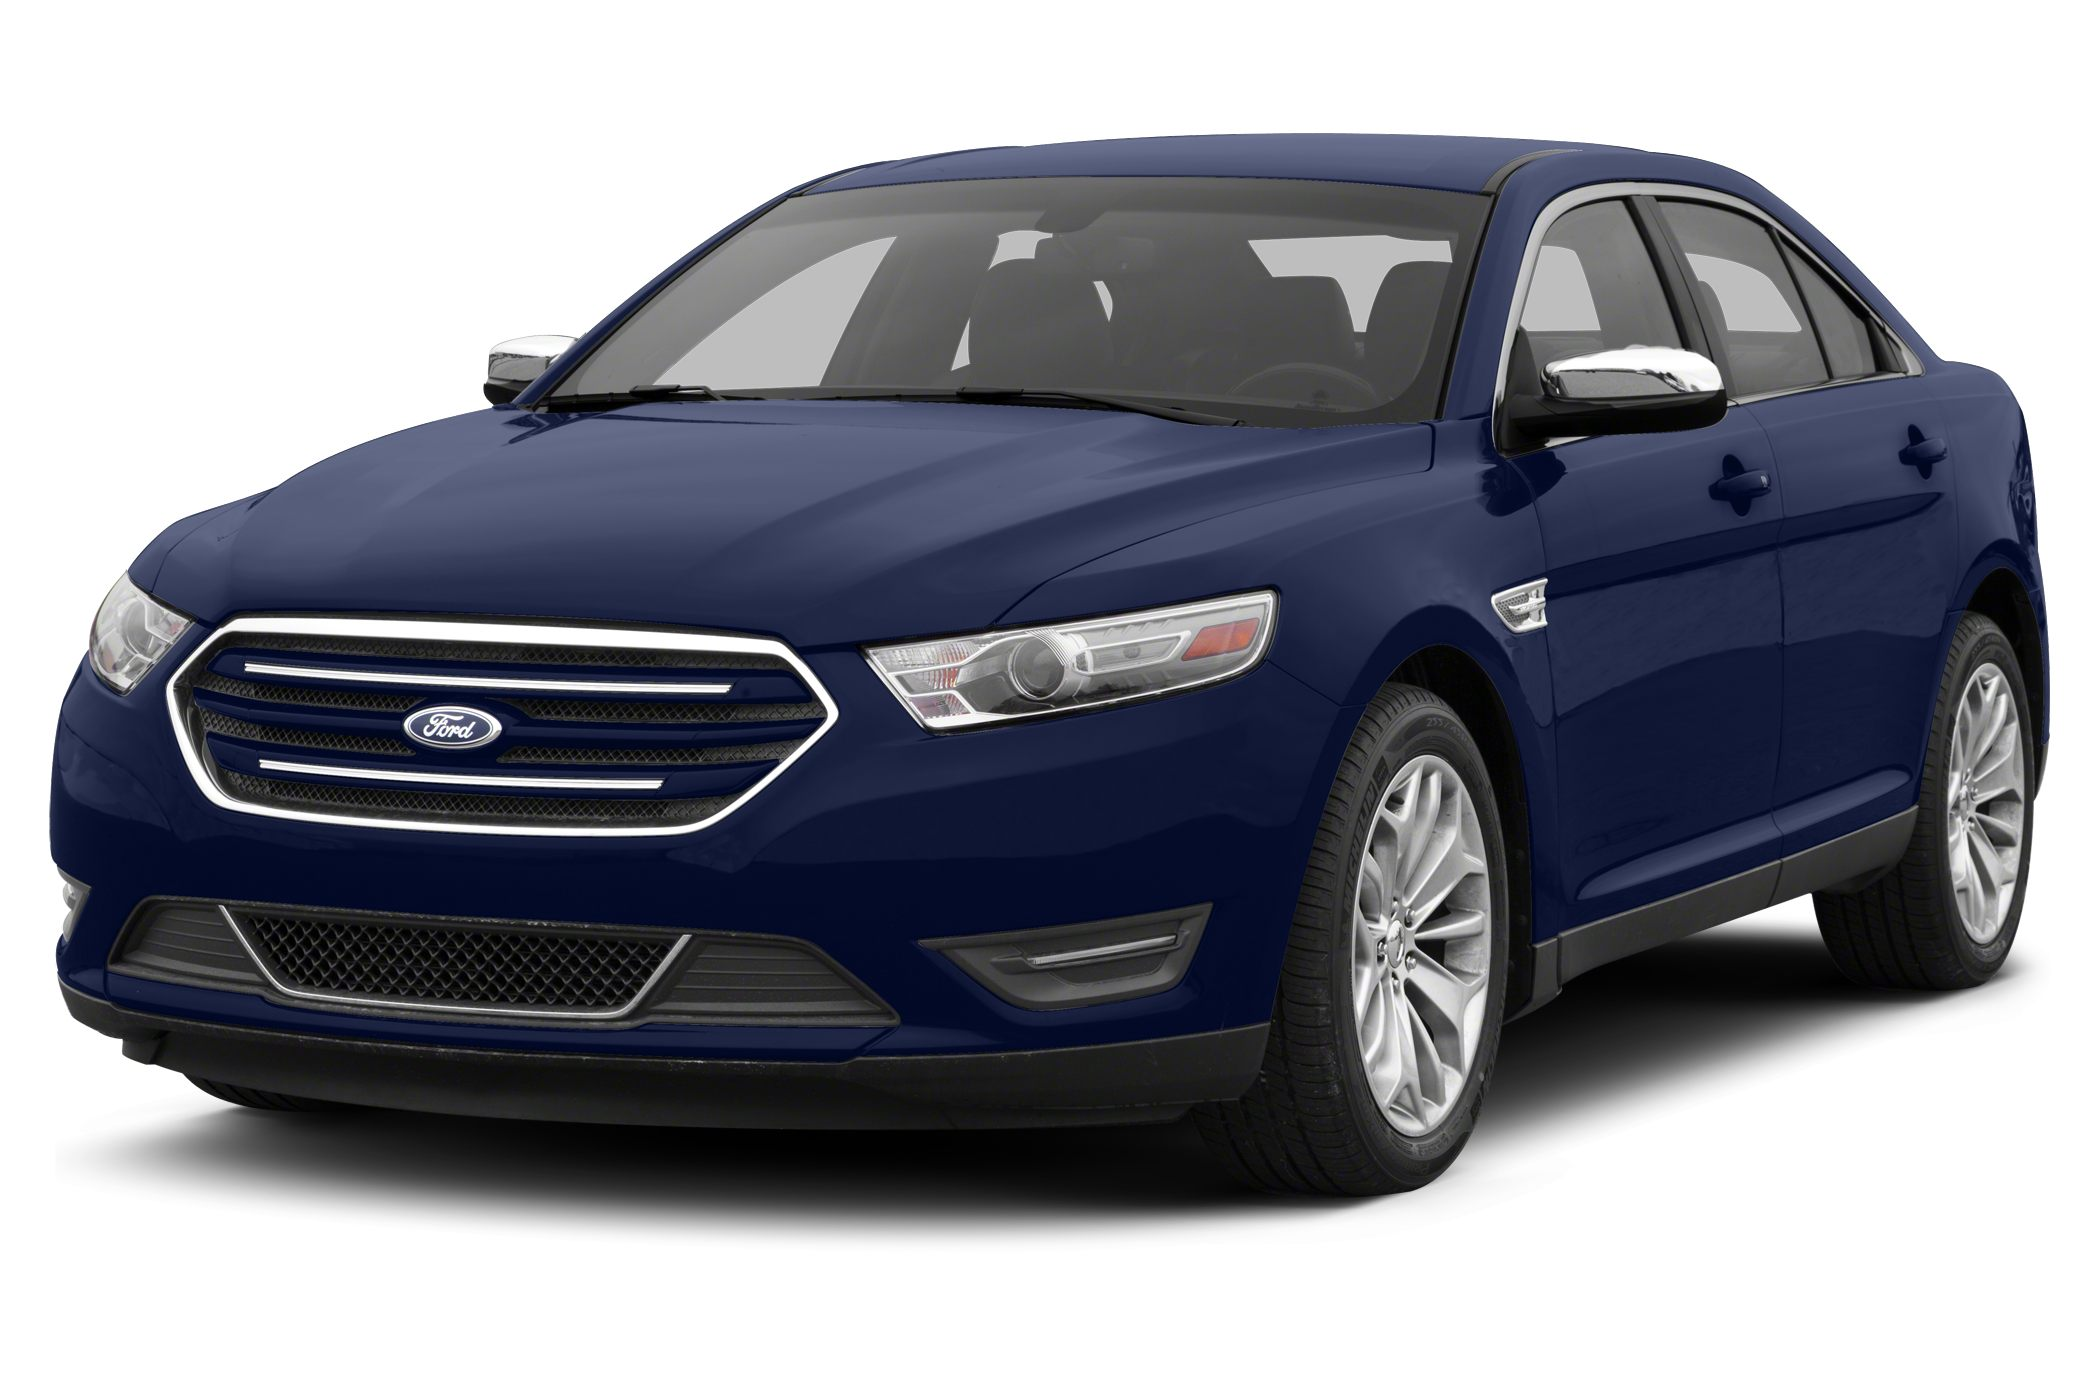 2014 Ford Taurus Limited Sedan for sale in Hanover for $23,995 with 17,538 miles